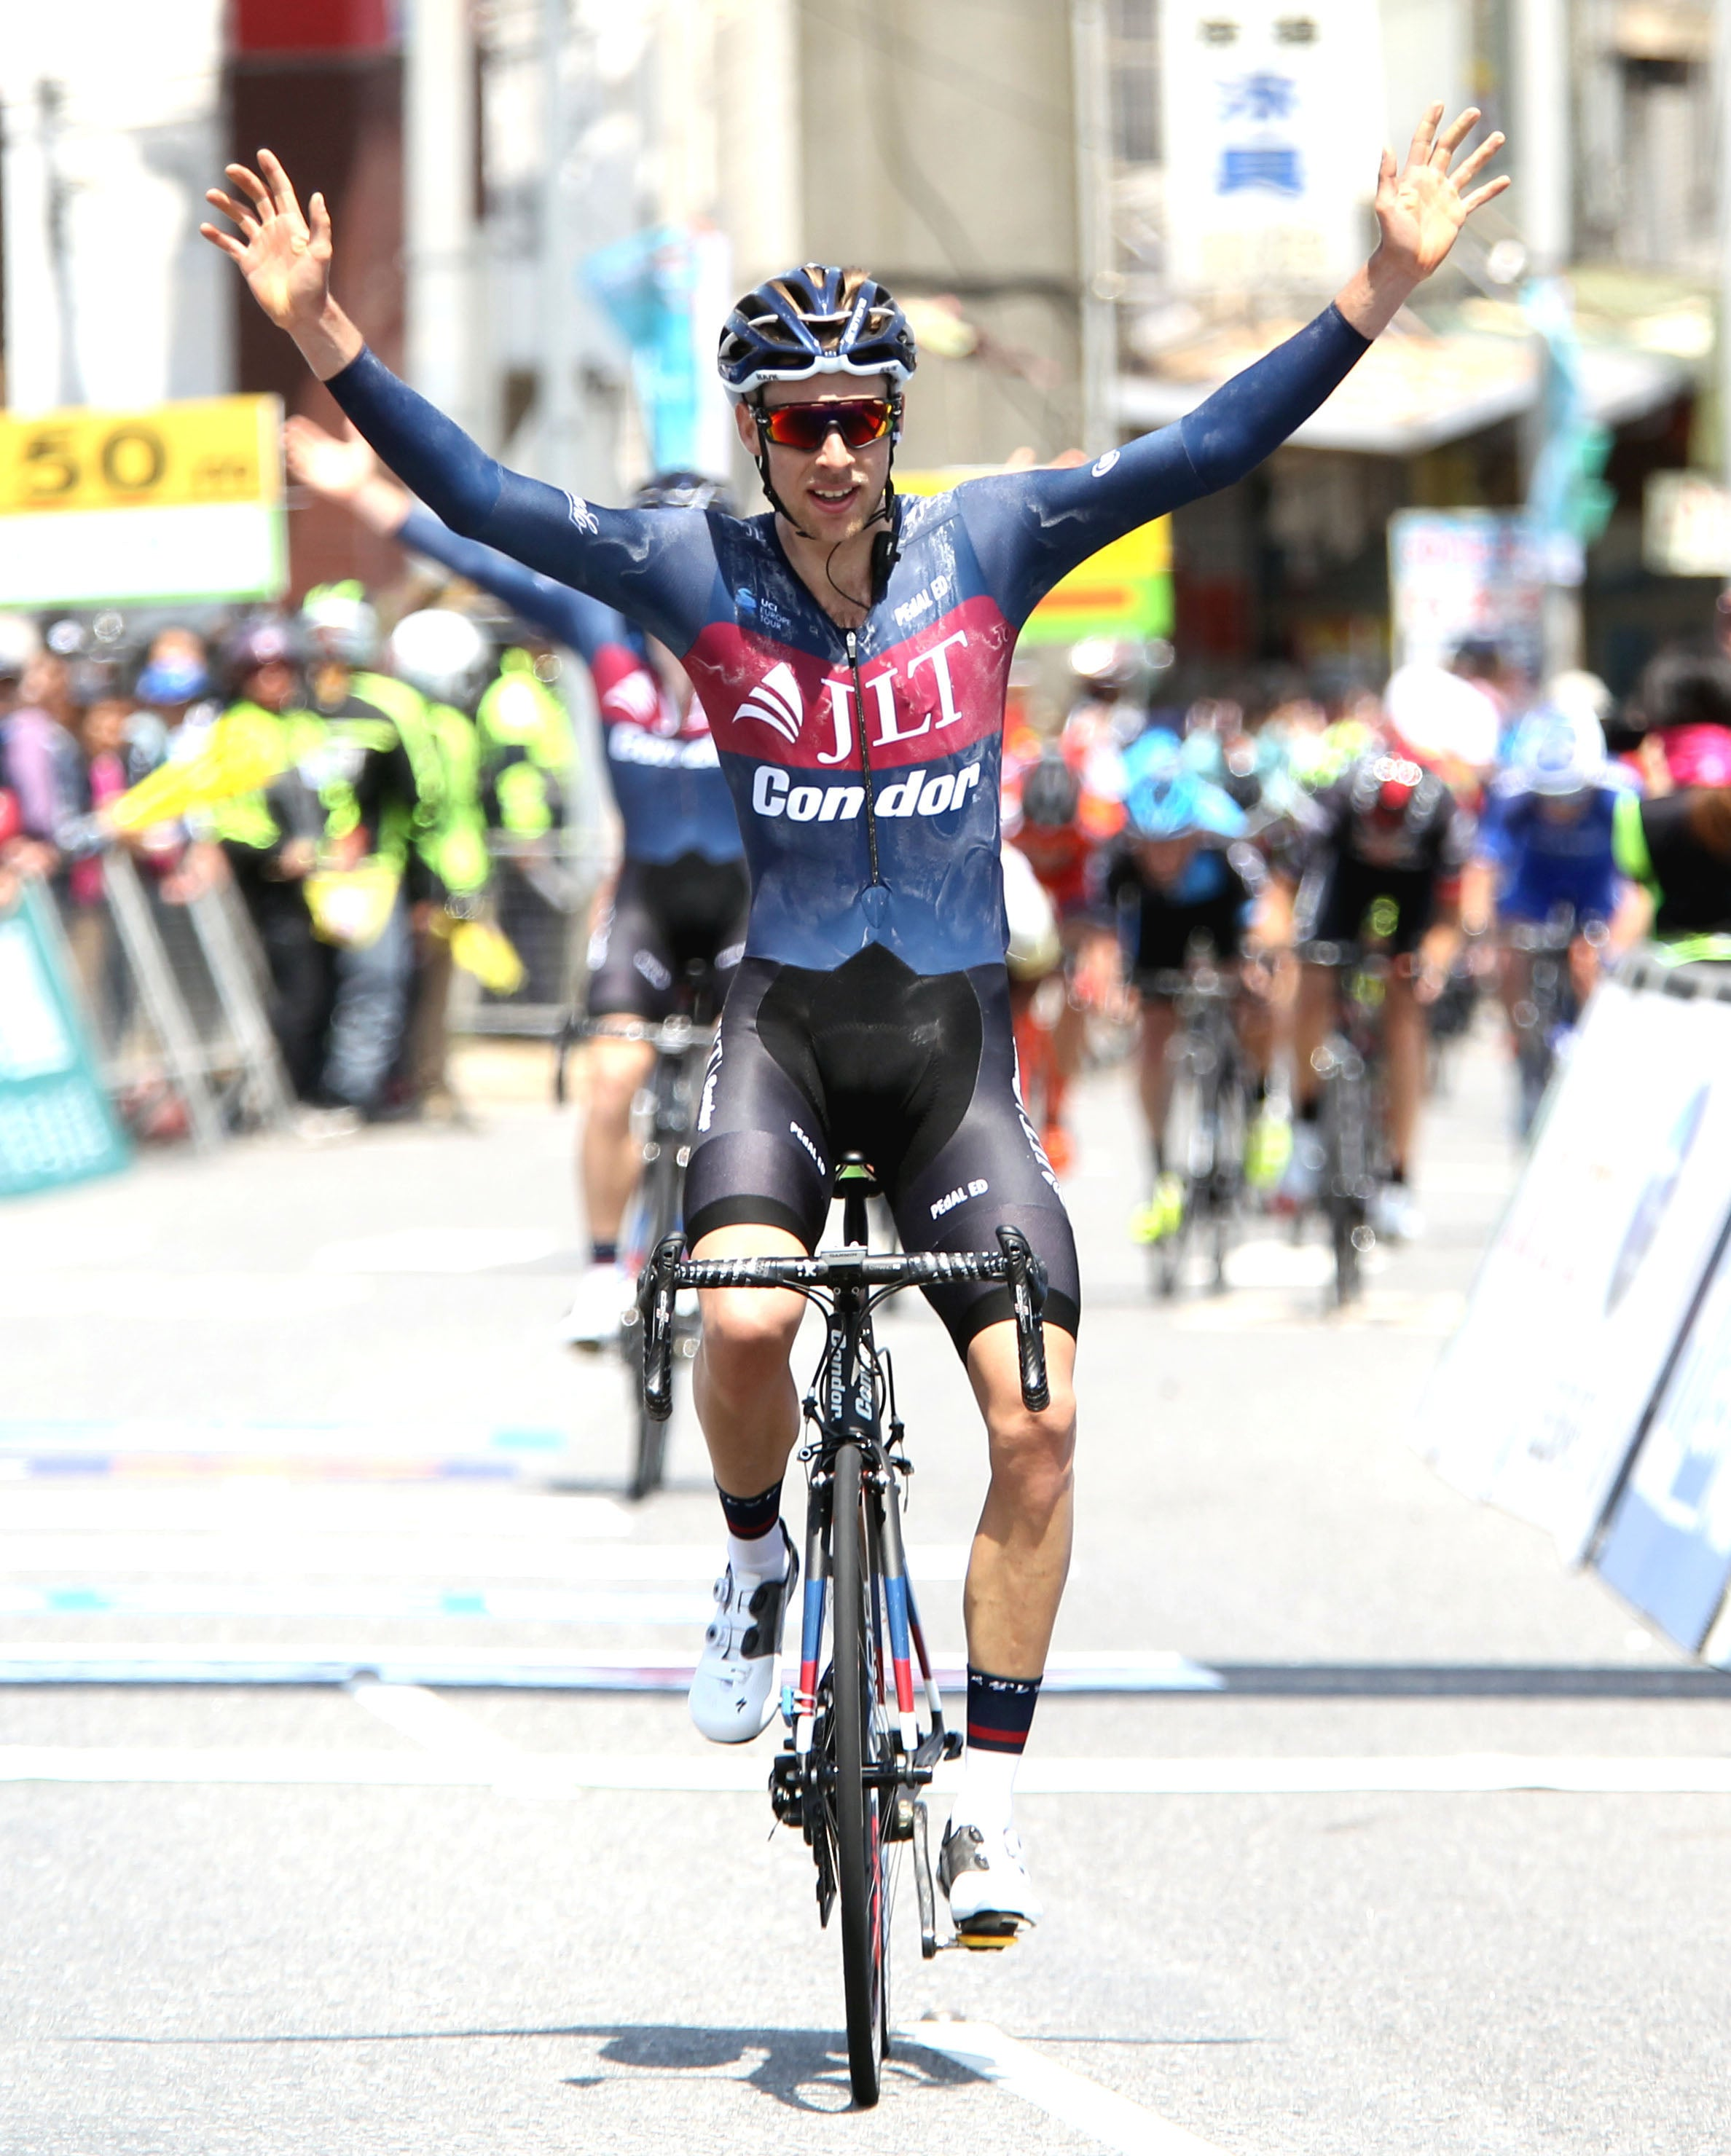 James Gullen wins stage 2